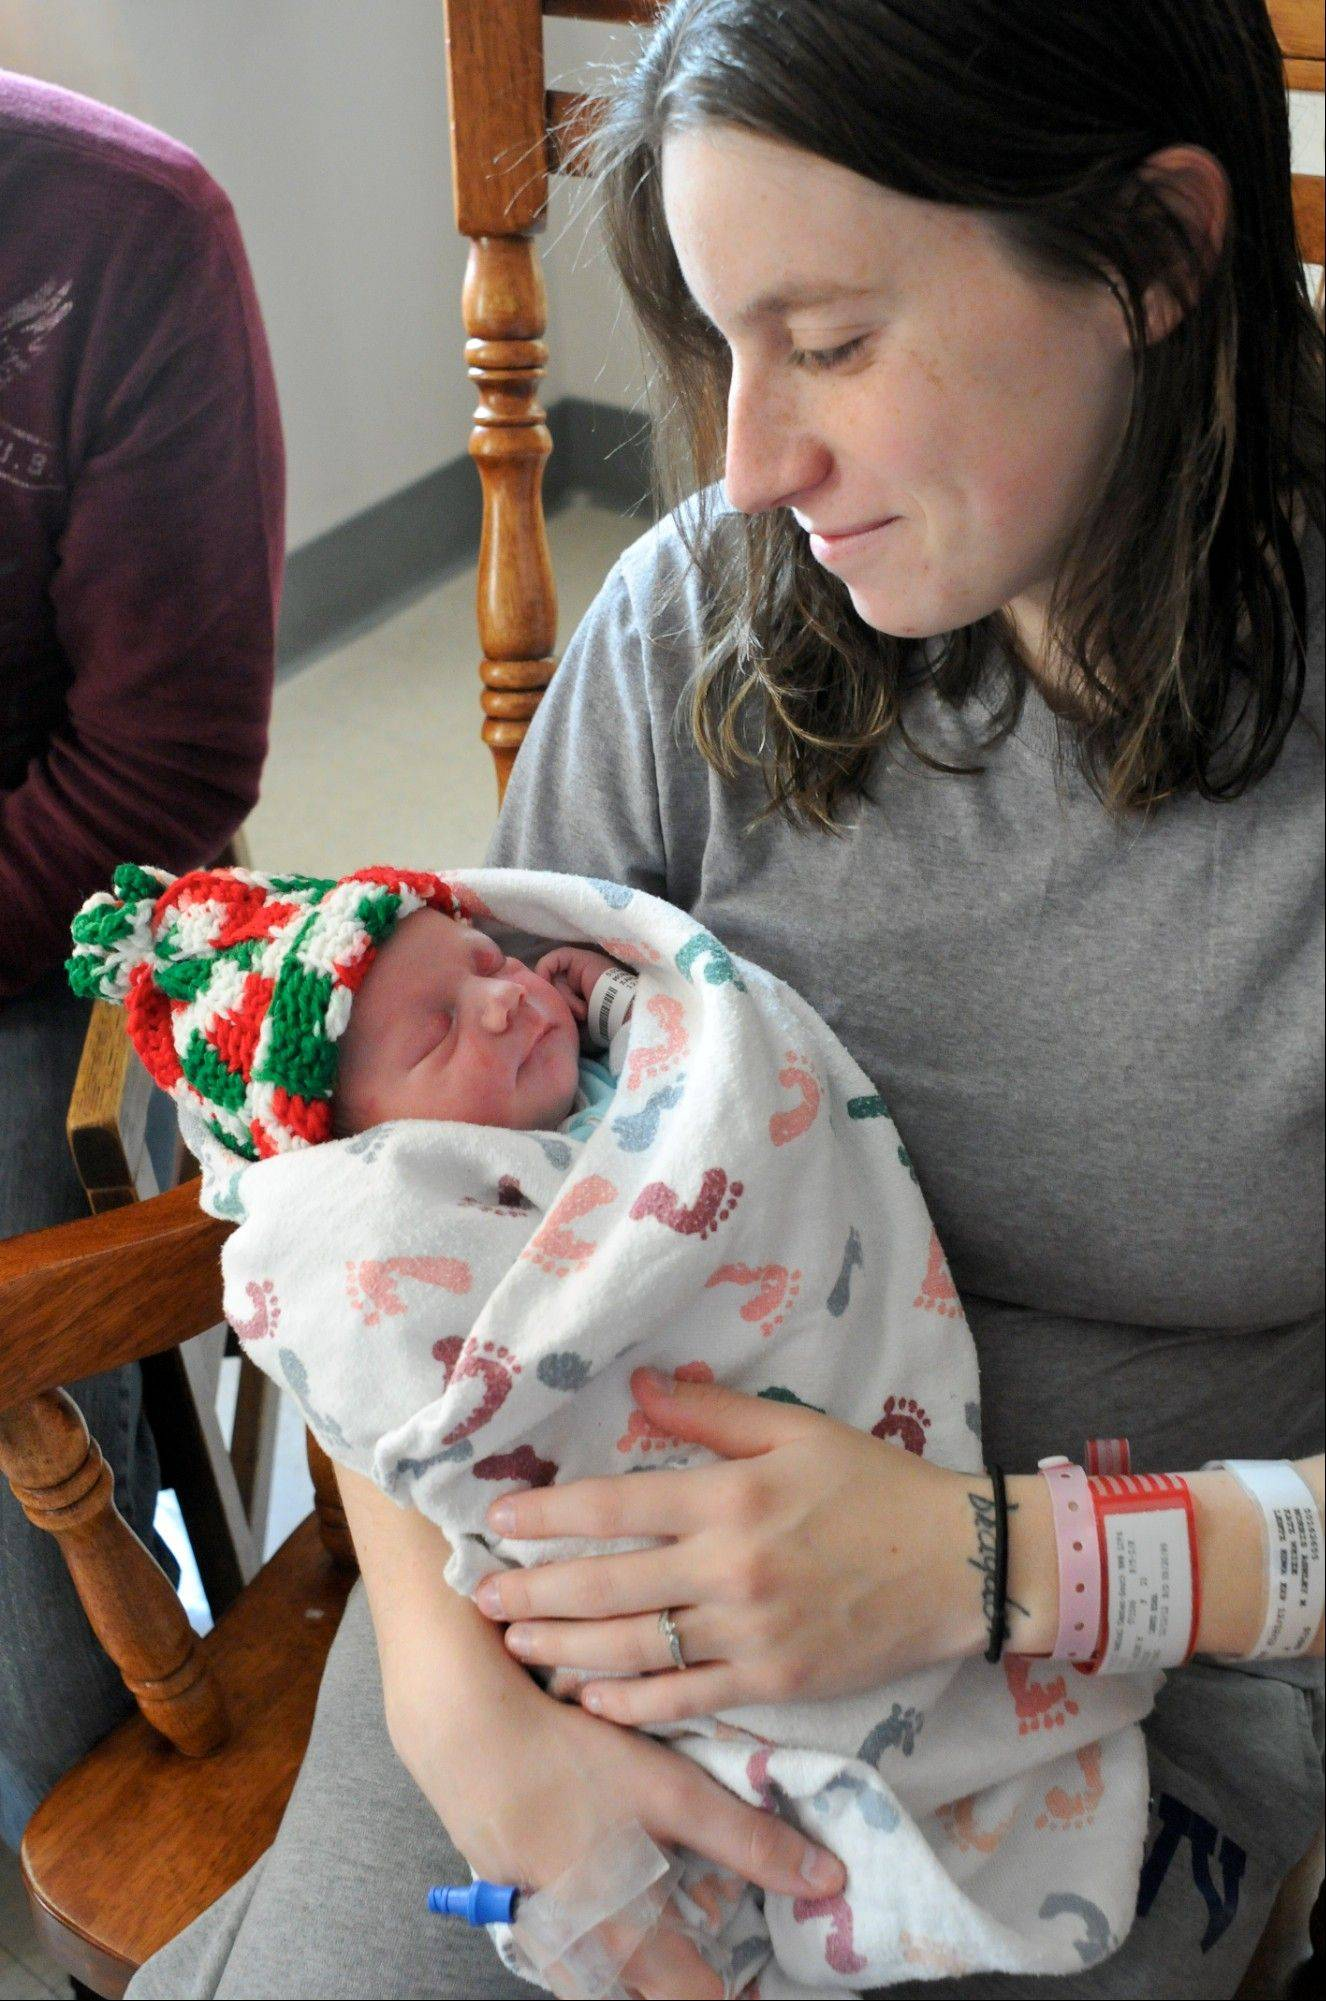 Ashley Morris, Williamstown, Pa., holds her newborn daughter, Ainsley, who was born at 12:12 p.m. on Wednesday at The Birthplace Schuylkill Medical Center South Jackson Street in Pottsville, Pa. Kurtis Lee King of Williamstown is the father.